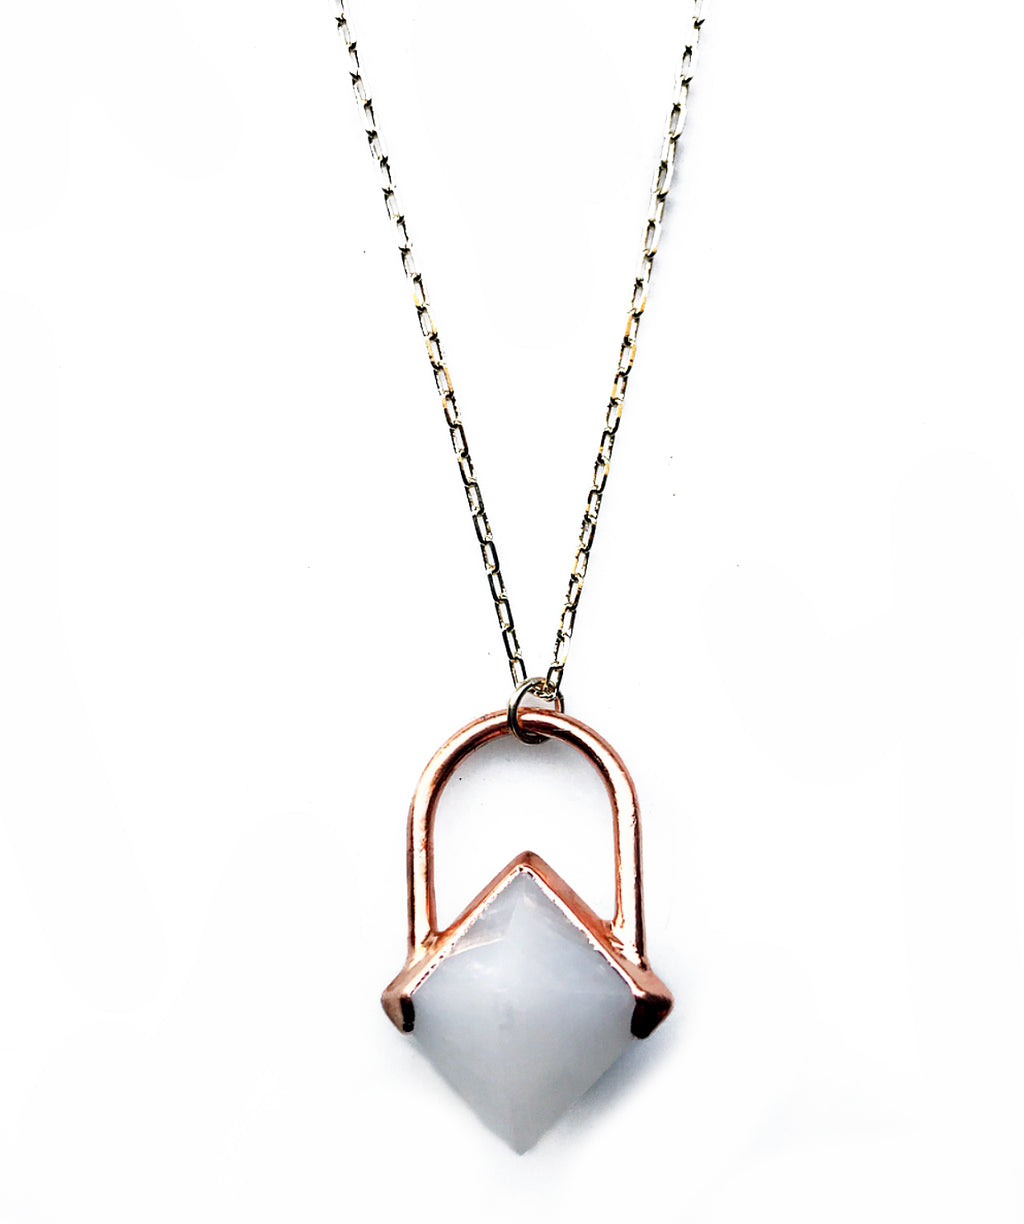 Octahedron Necklace (White Aventurine)